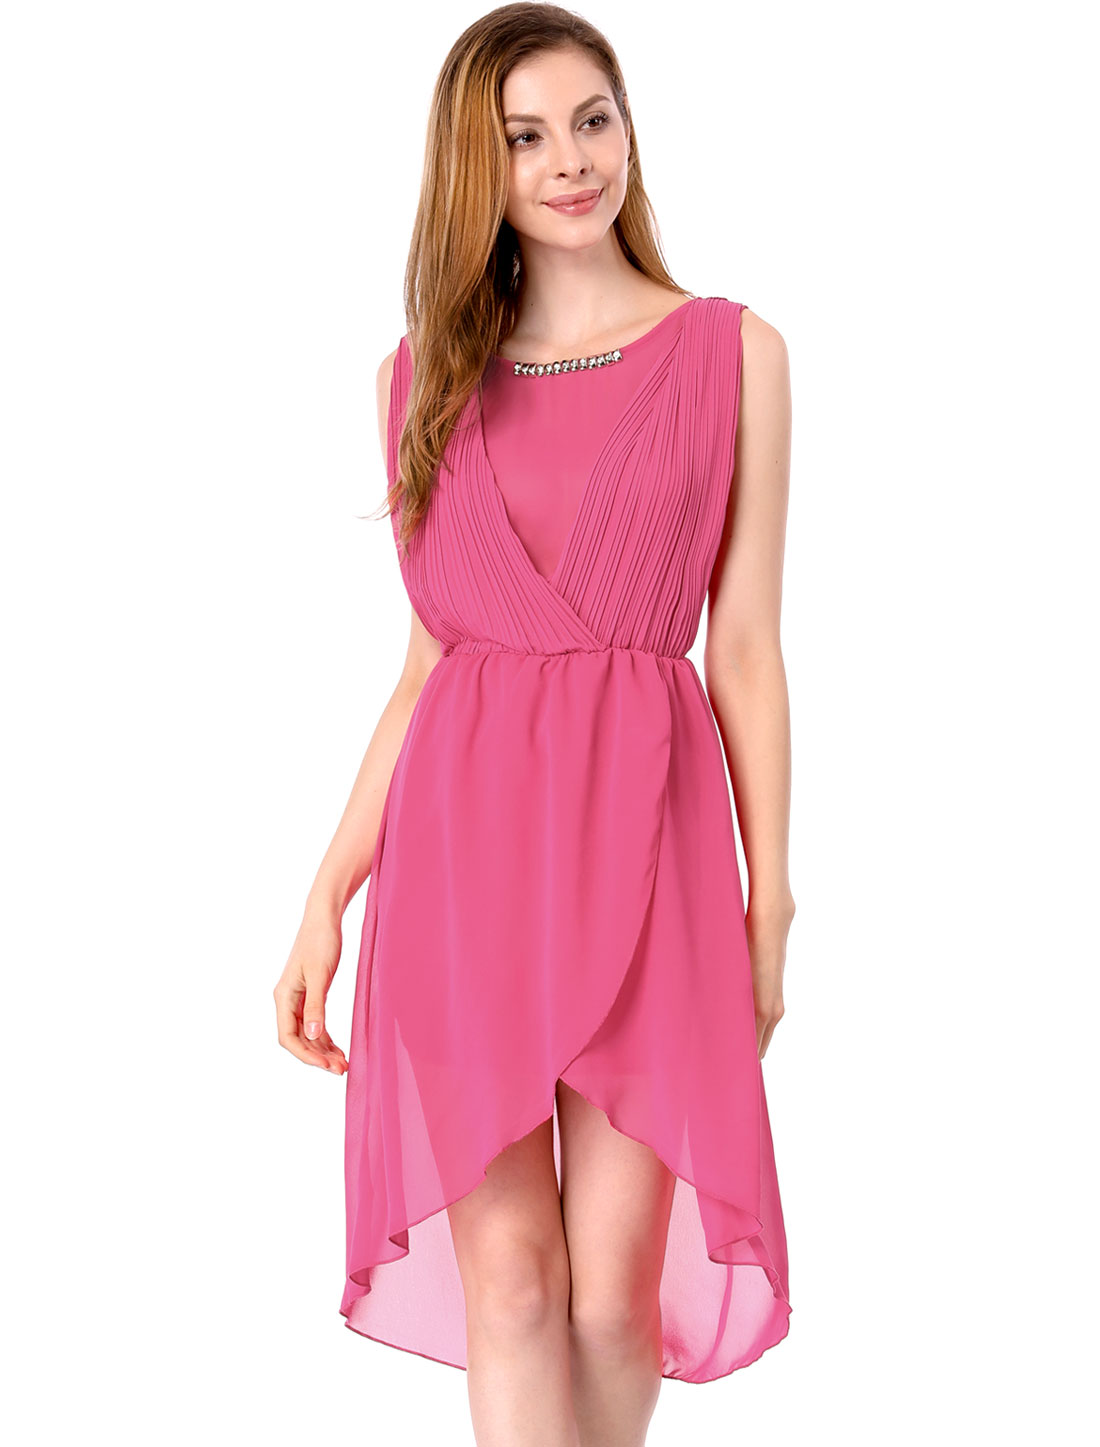 Ladies Round Neck Sleeveless Elastic Waist Low-High Hem Fuchsia Dress S